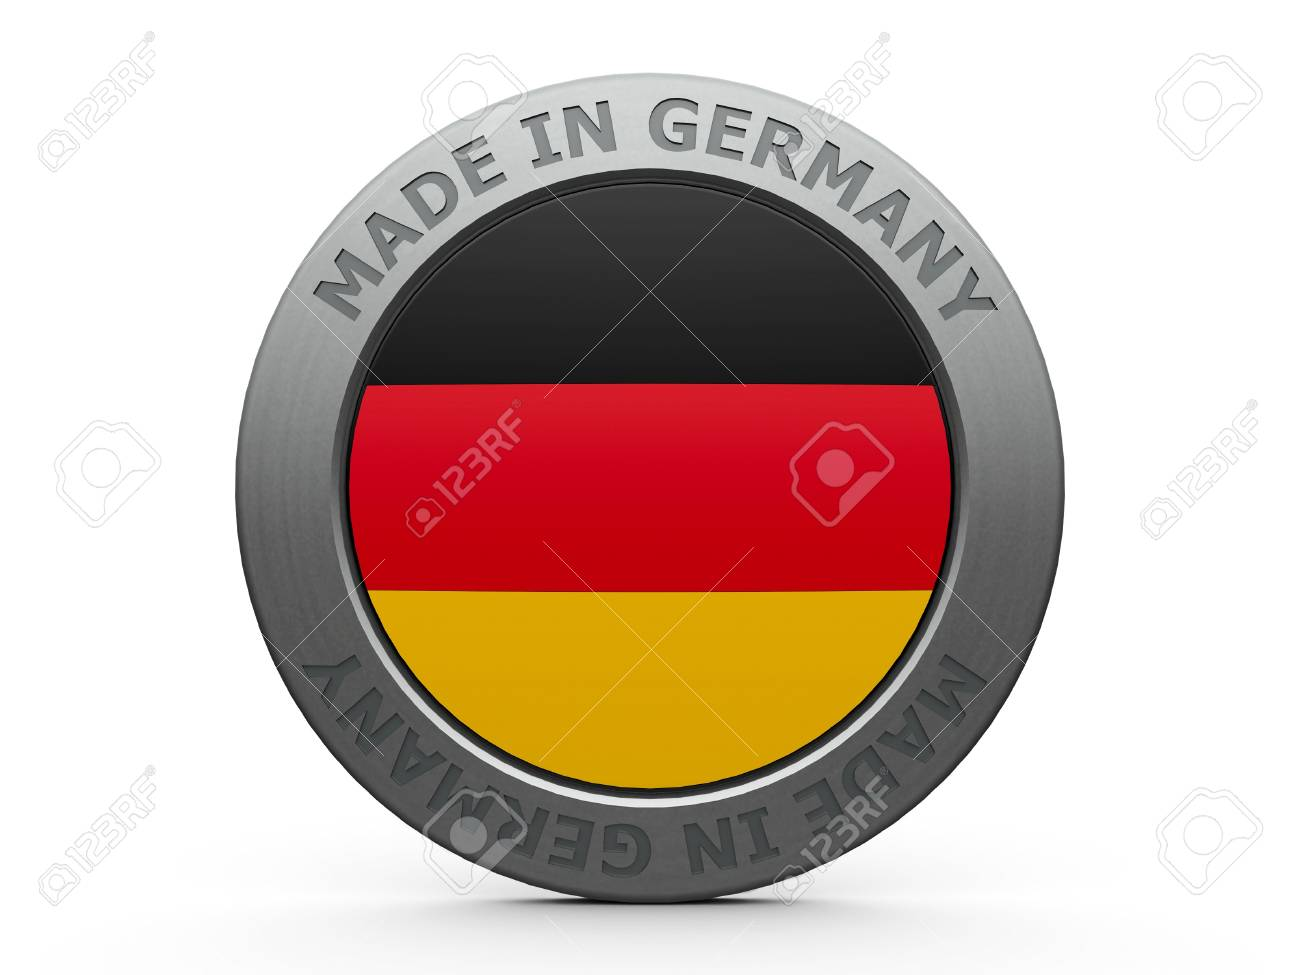 Emblem - made in Germany, three-dimensional rendering Stock Photo - 18560869